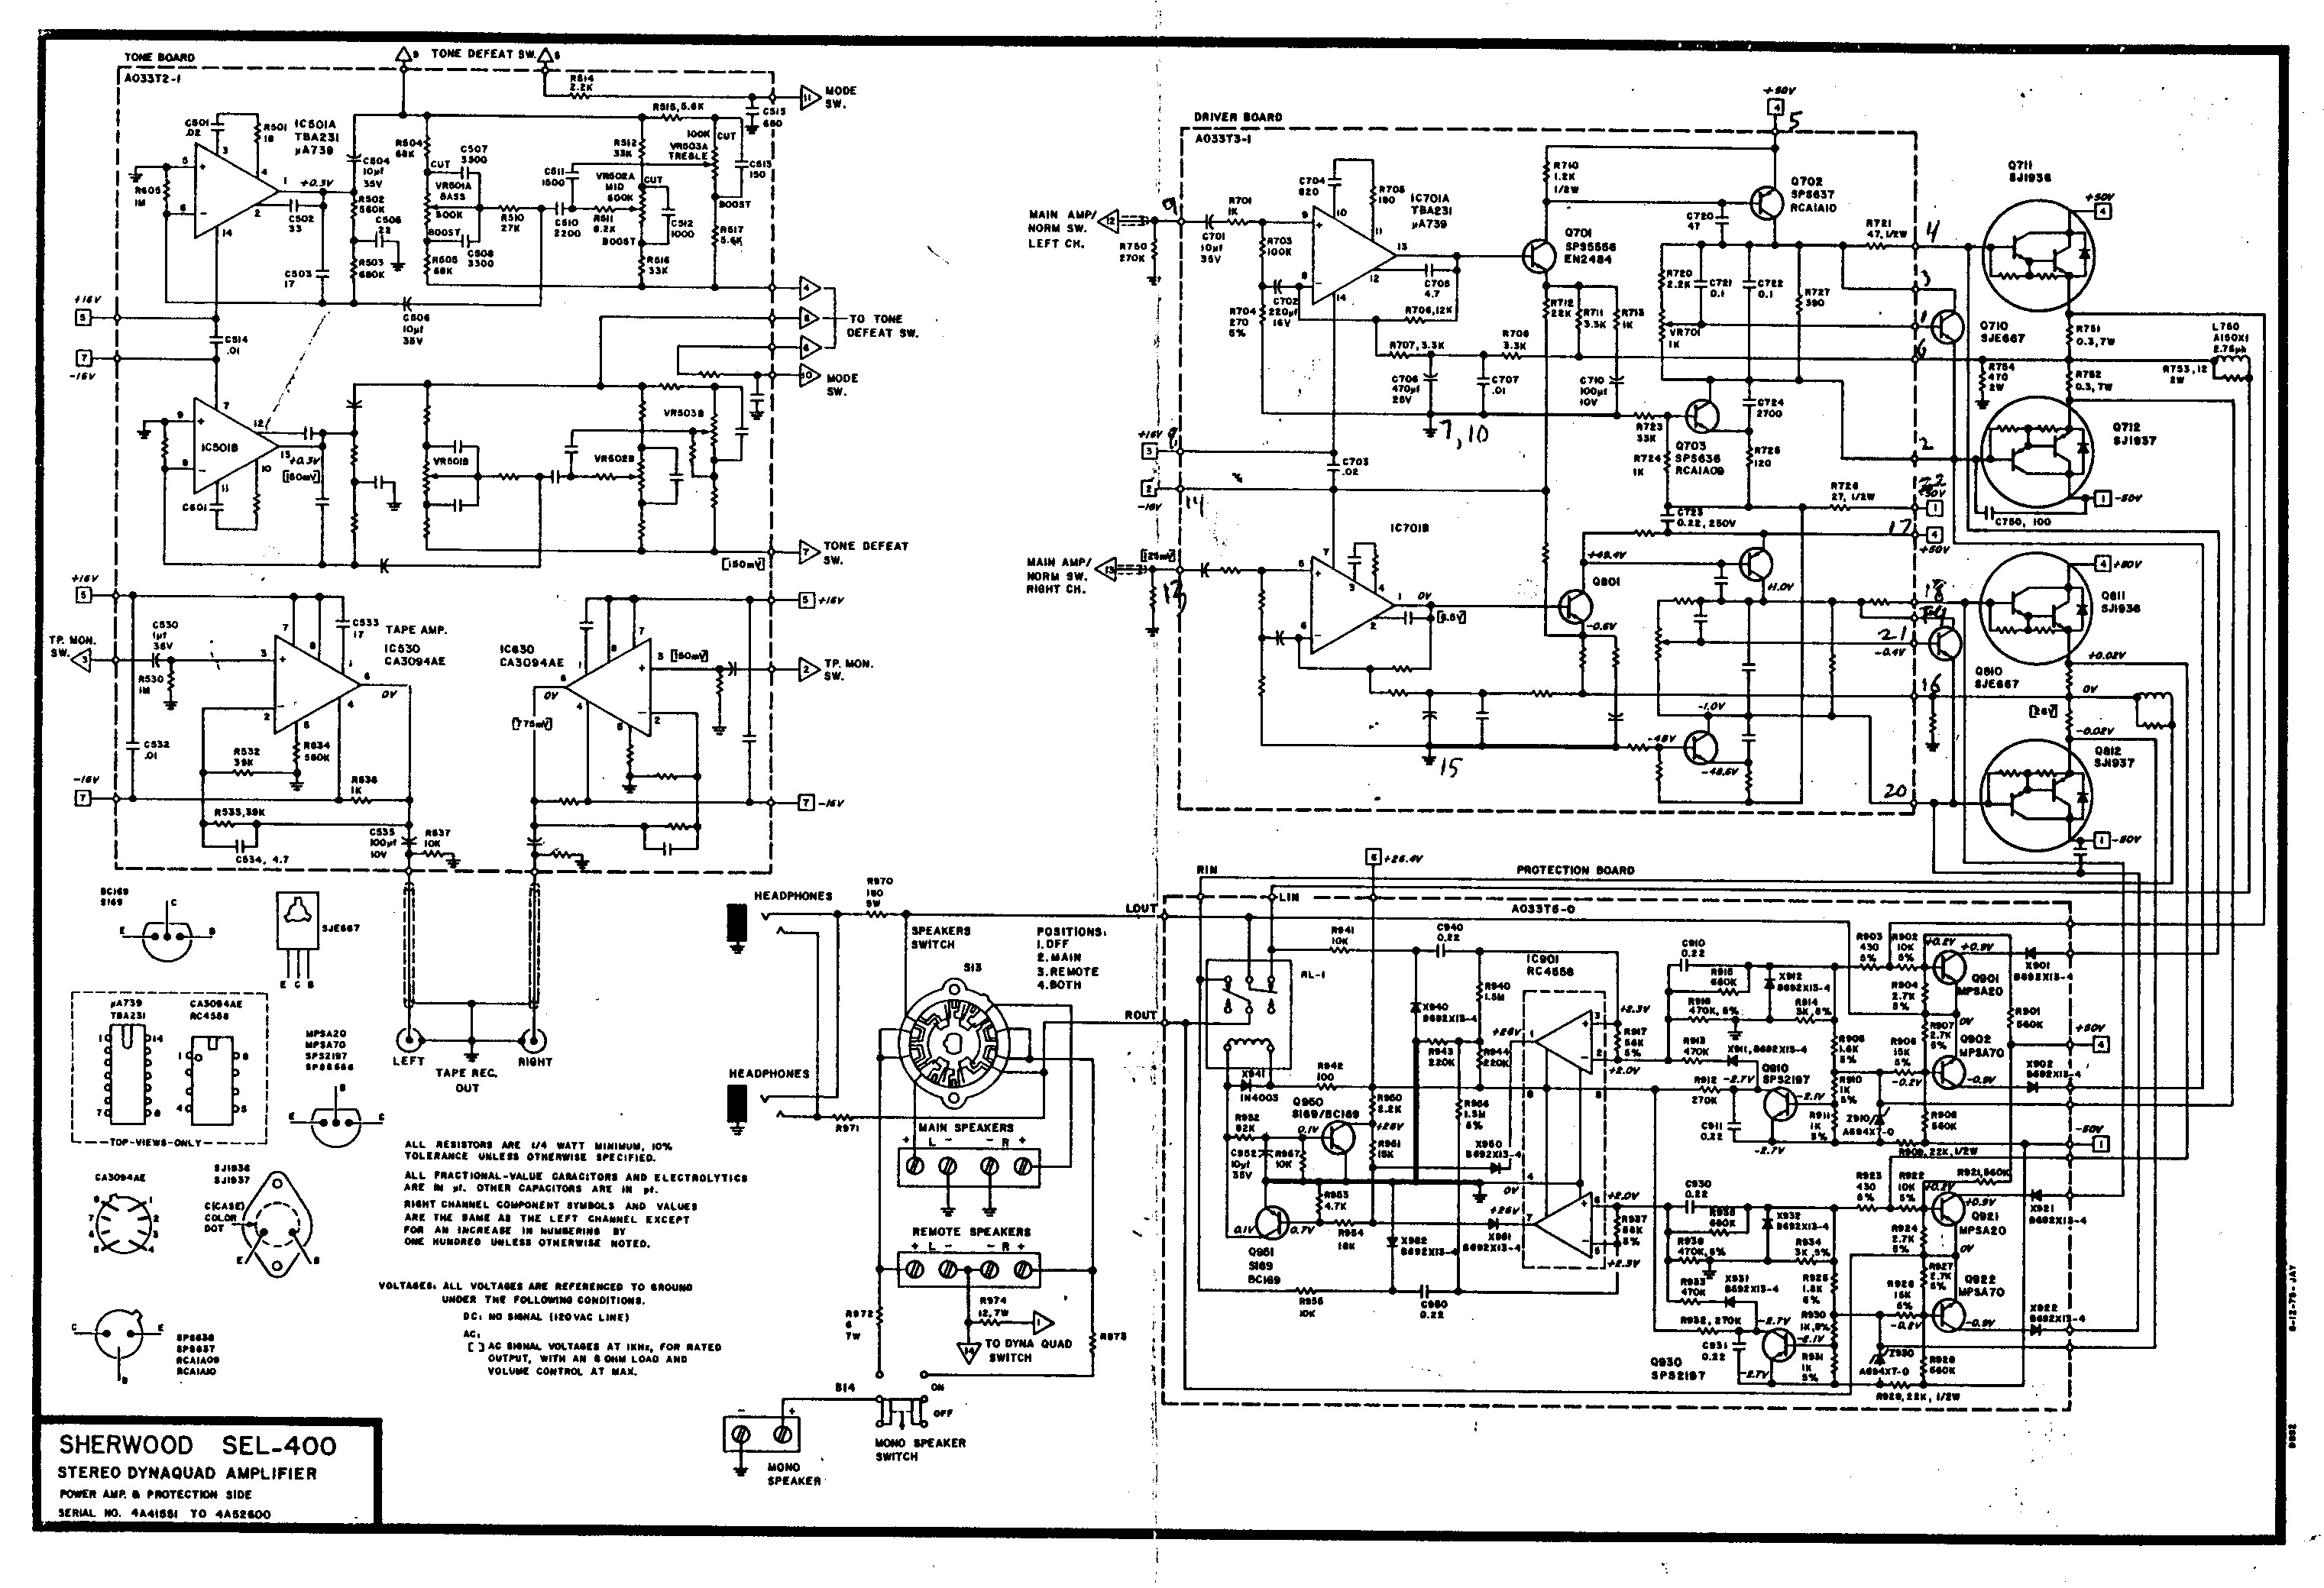 Sherwood SEL 400 Schematic.pdf